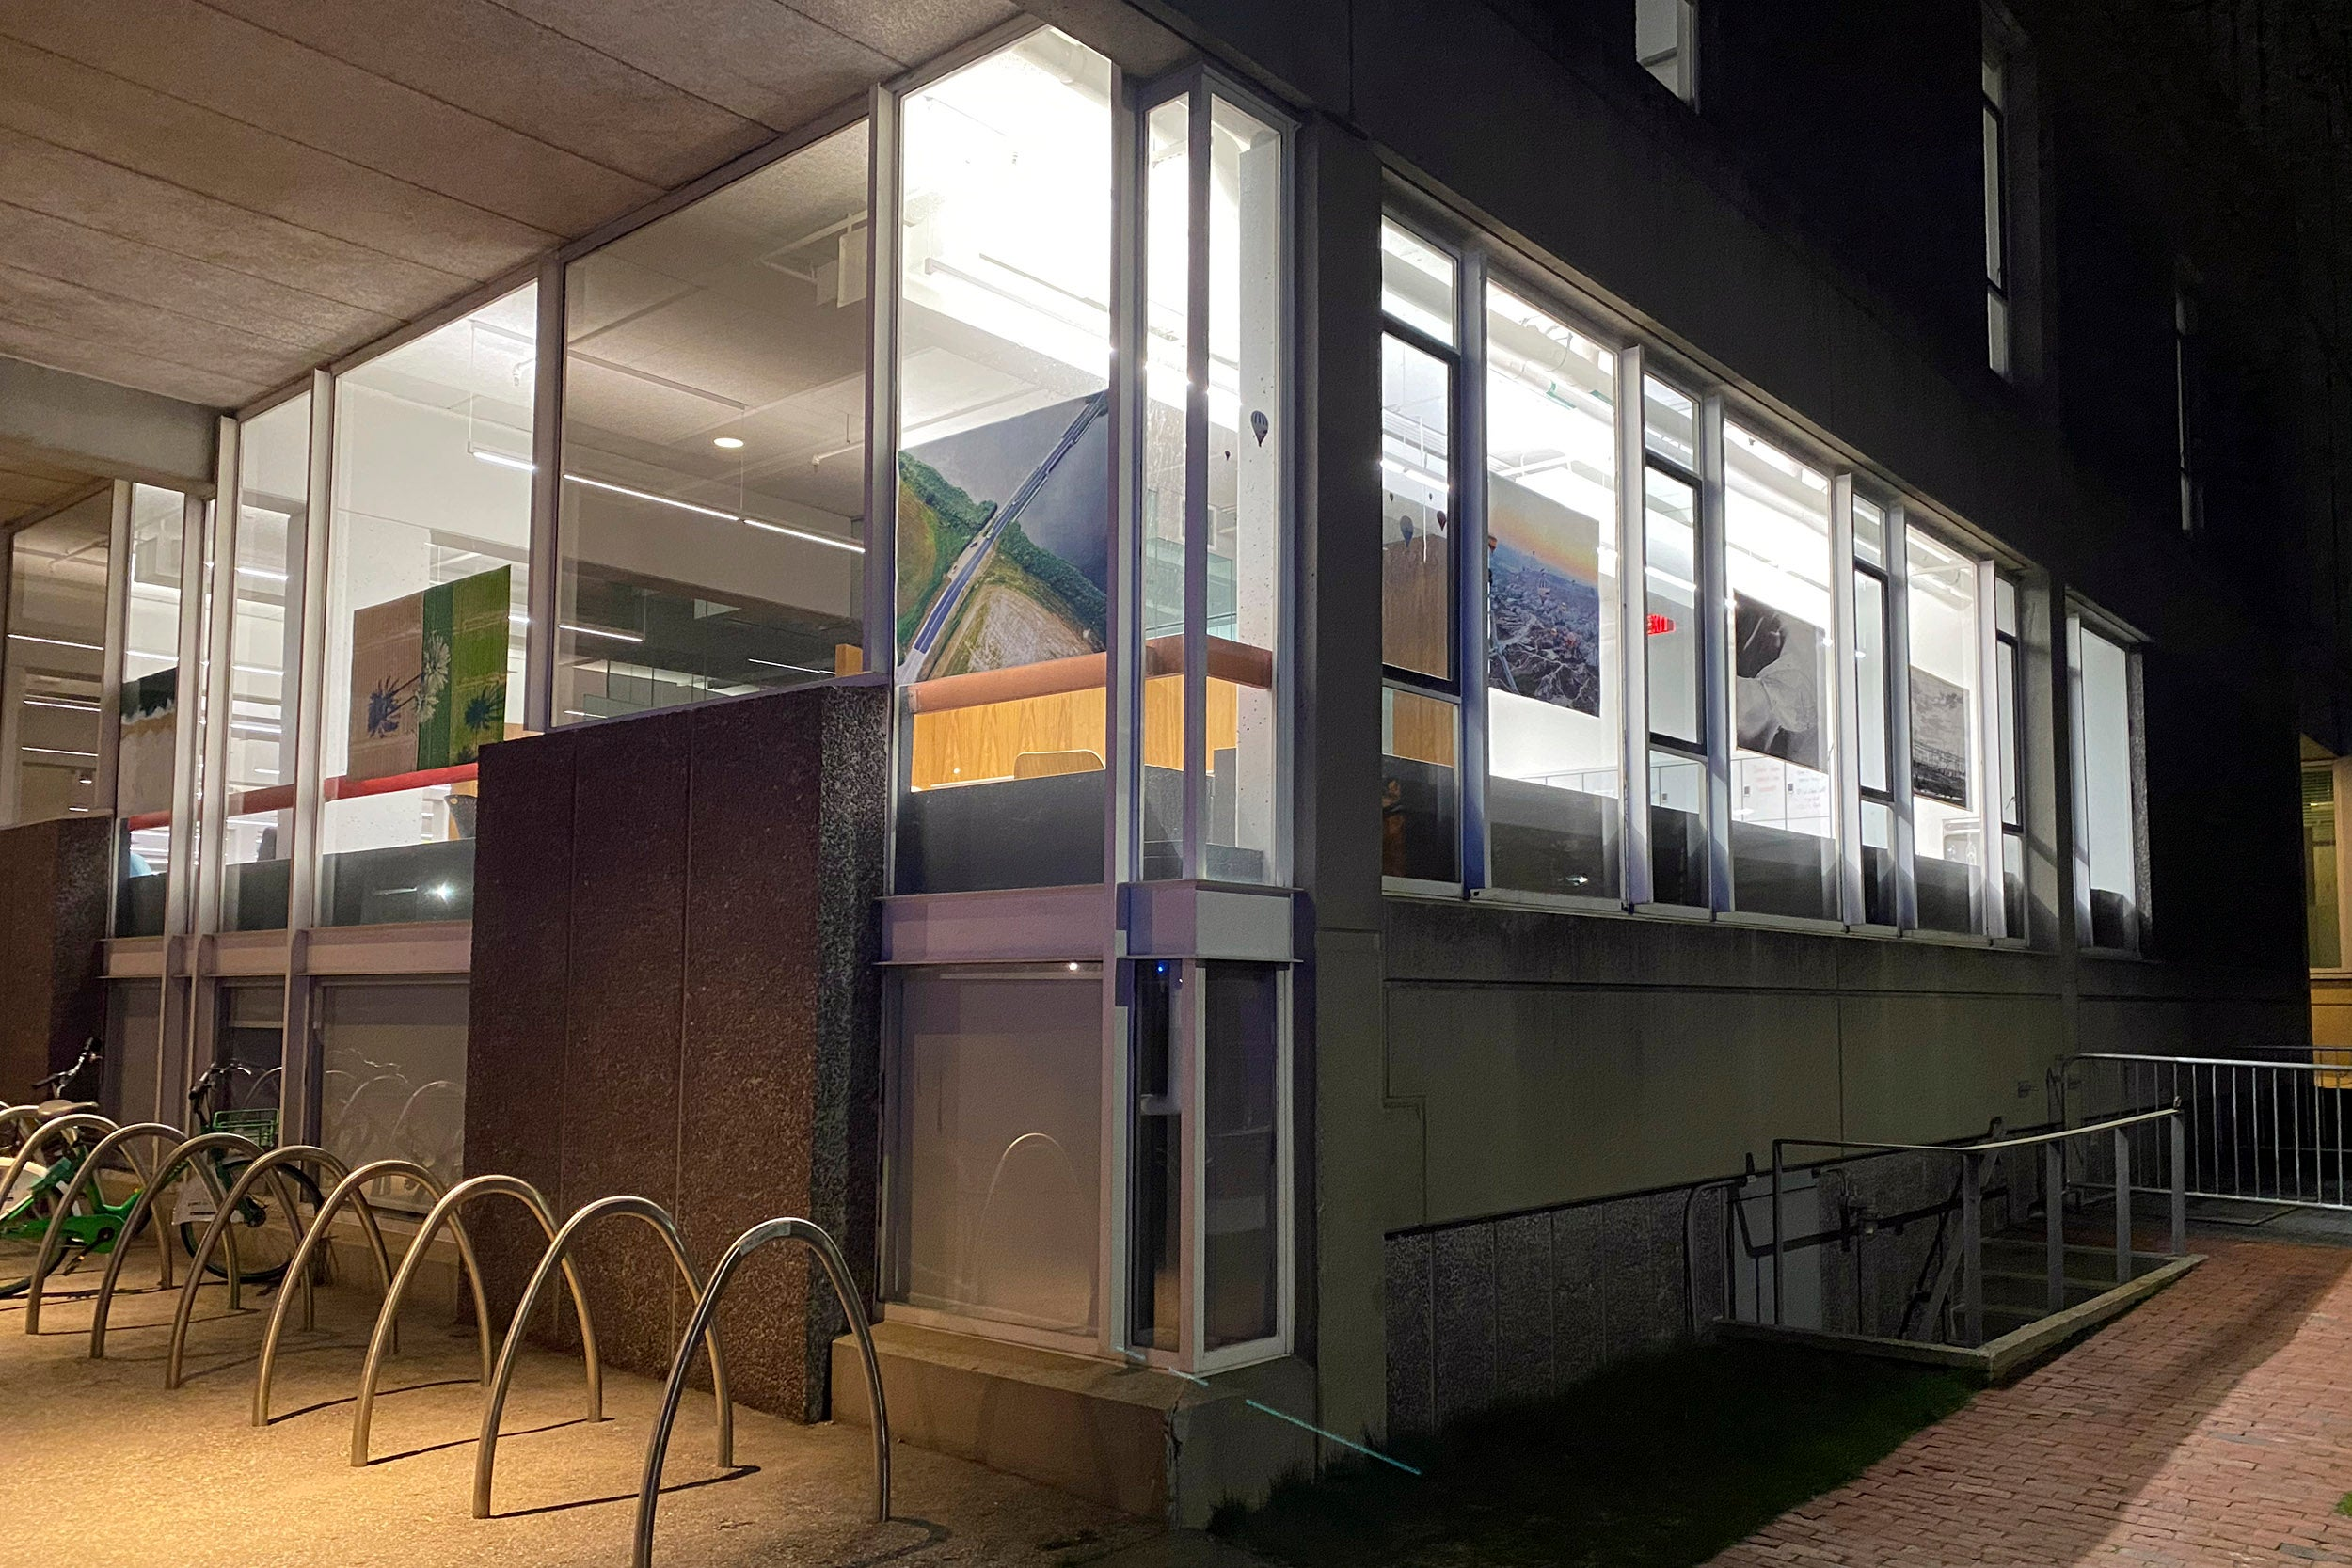 Art in windows of Cabot Library, lit up at night.